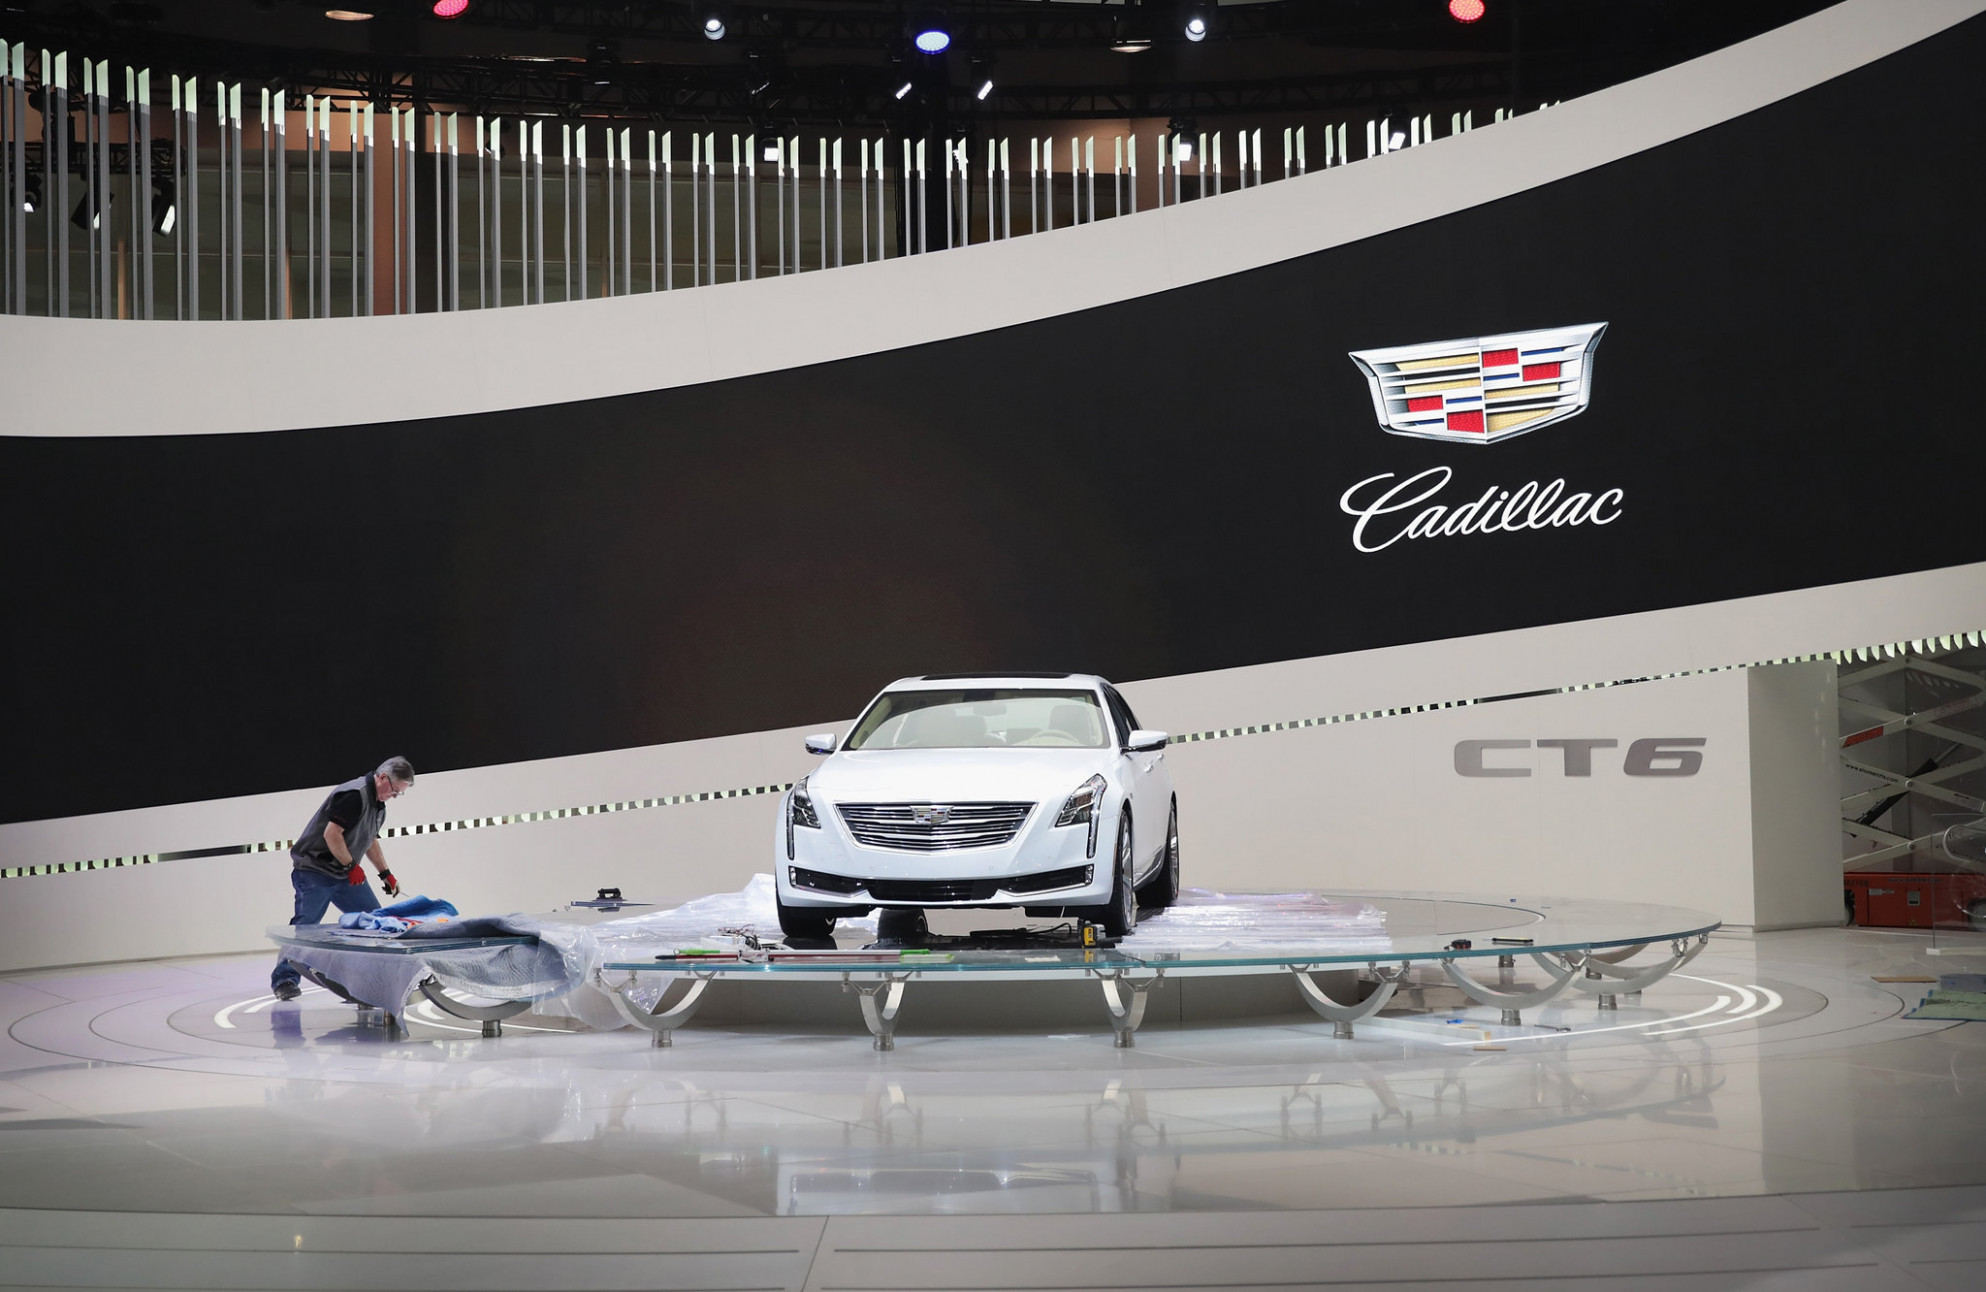 Cadillac Ad Tries to Bridge Nation's Chasm, Without Falling In ...